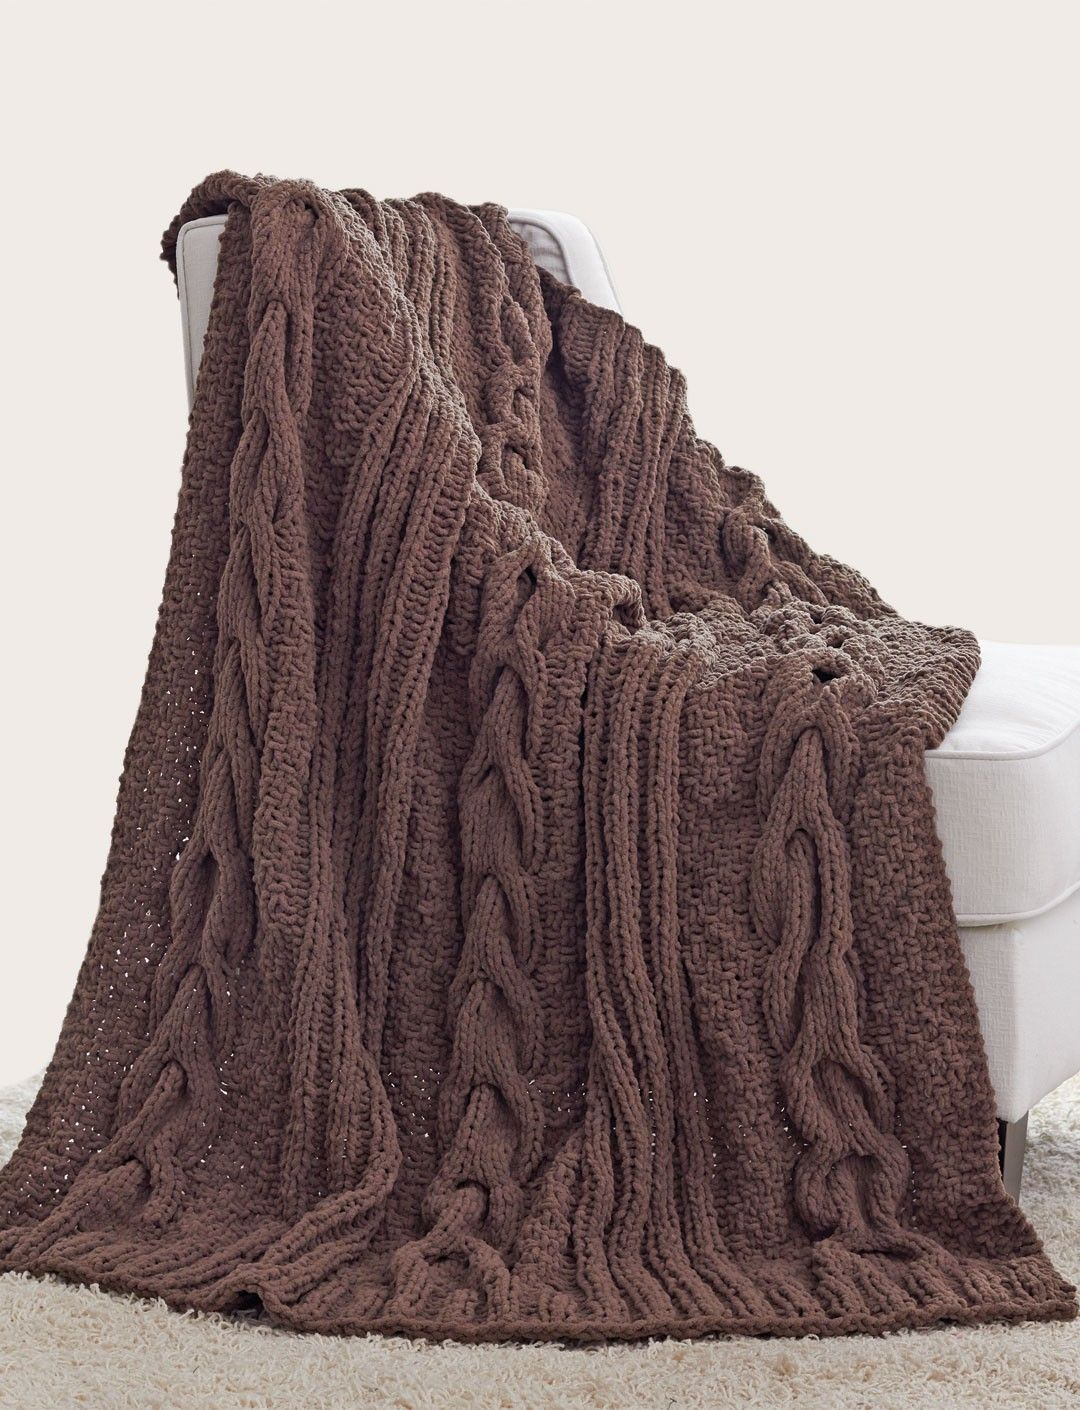 Cable afghan knitting patterns cable blanket and afghans cable afghan knitting patterns bankloansurffo Image collections